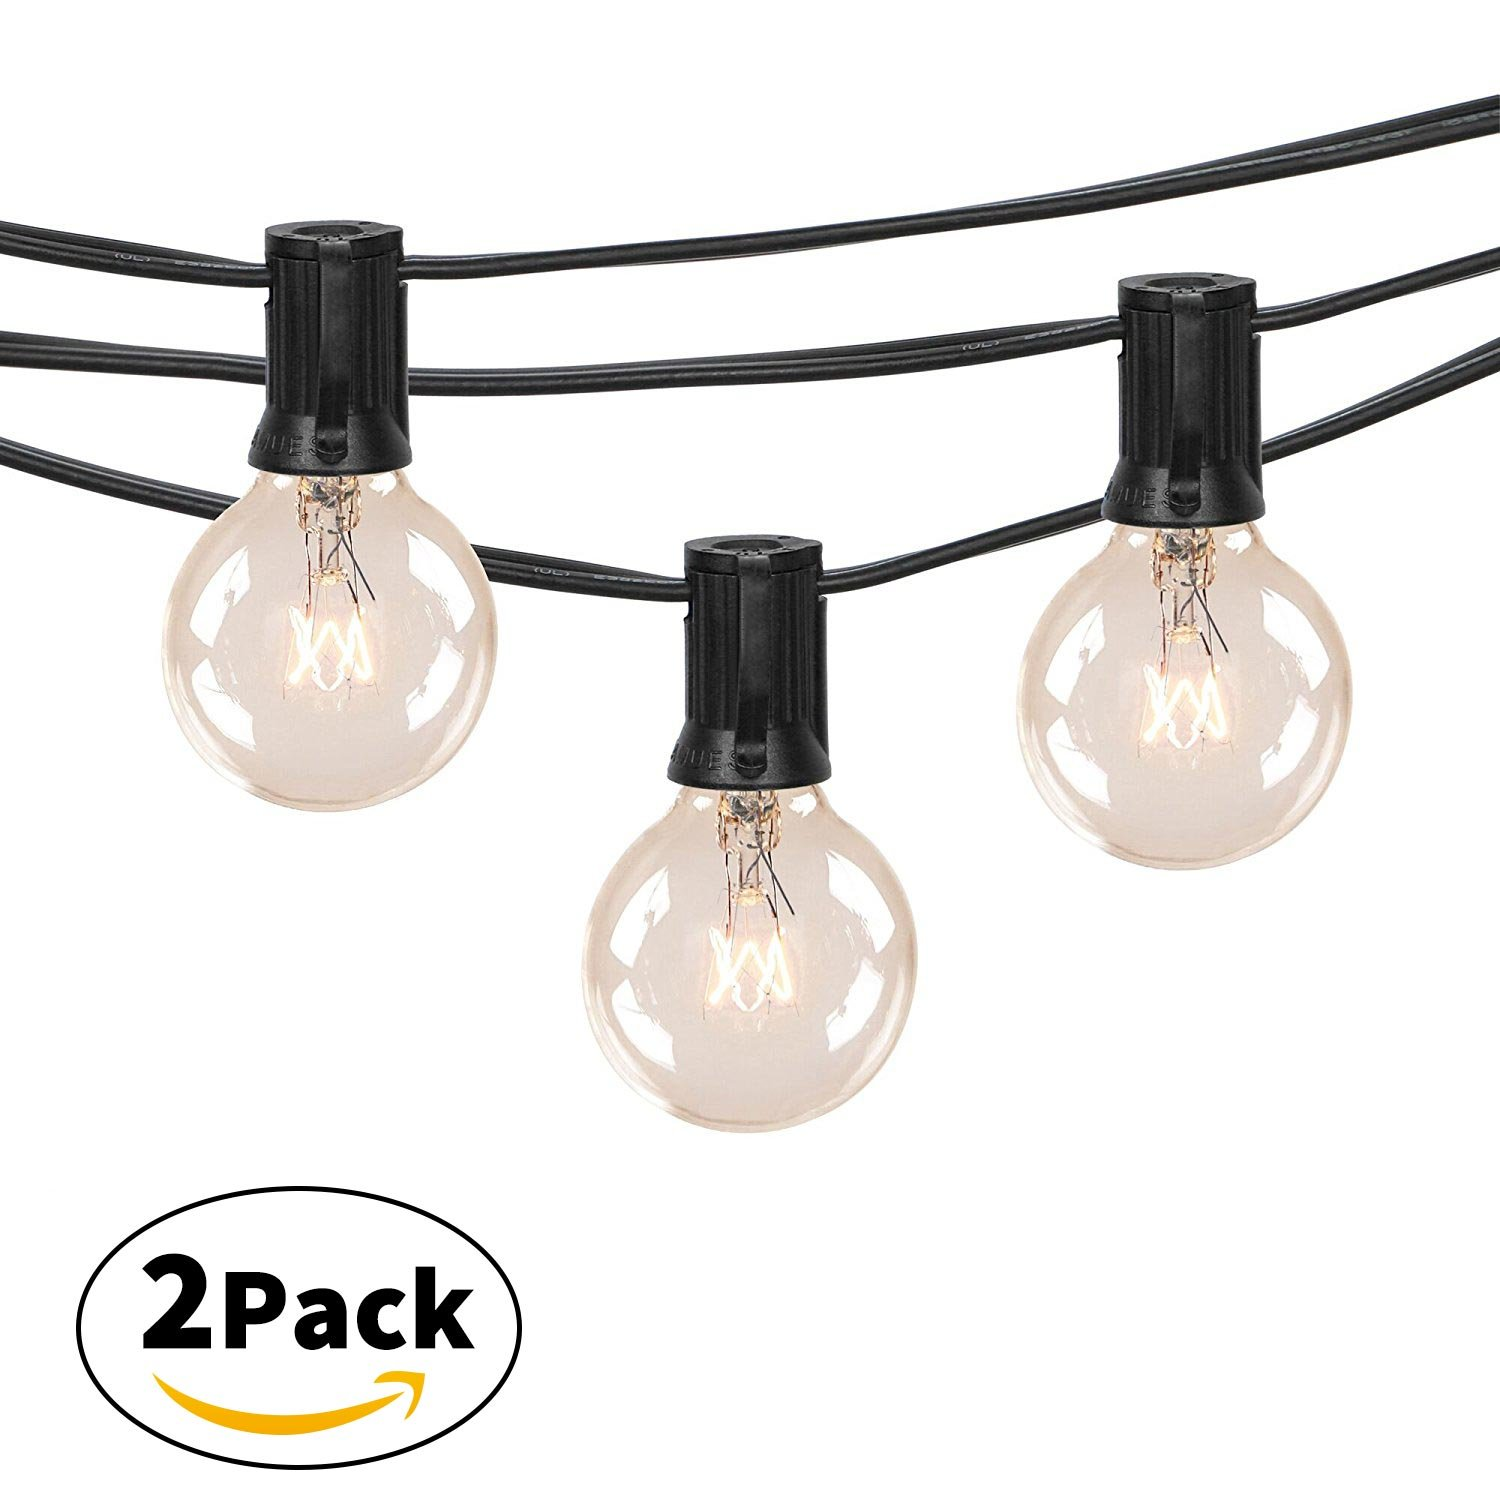 2-Pack 25Ft Outdoor Patio String Lights with 25 Clear Globe G40 Bulbs, UL Certified for Porch Backyard Deck Bistro Gazebos Pergolas Balcony Wedding Markets Decor, Black